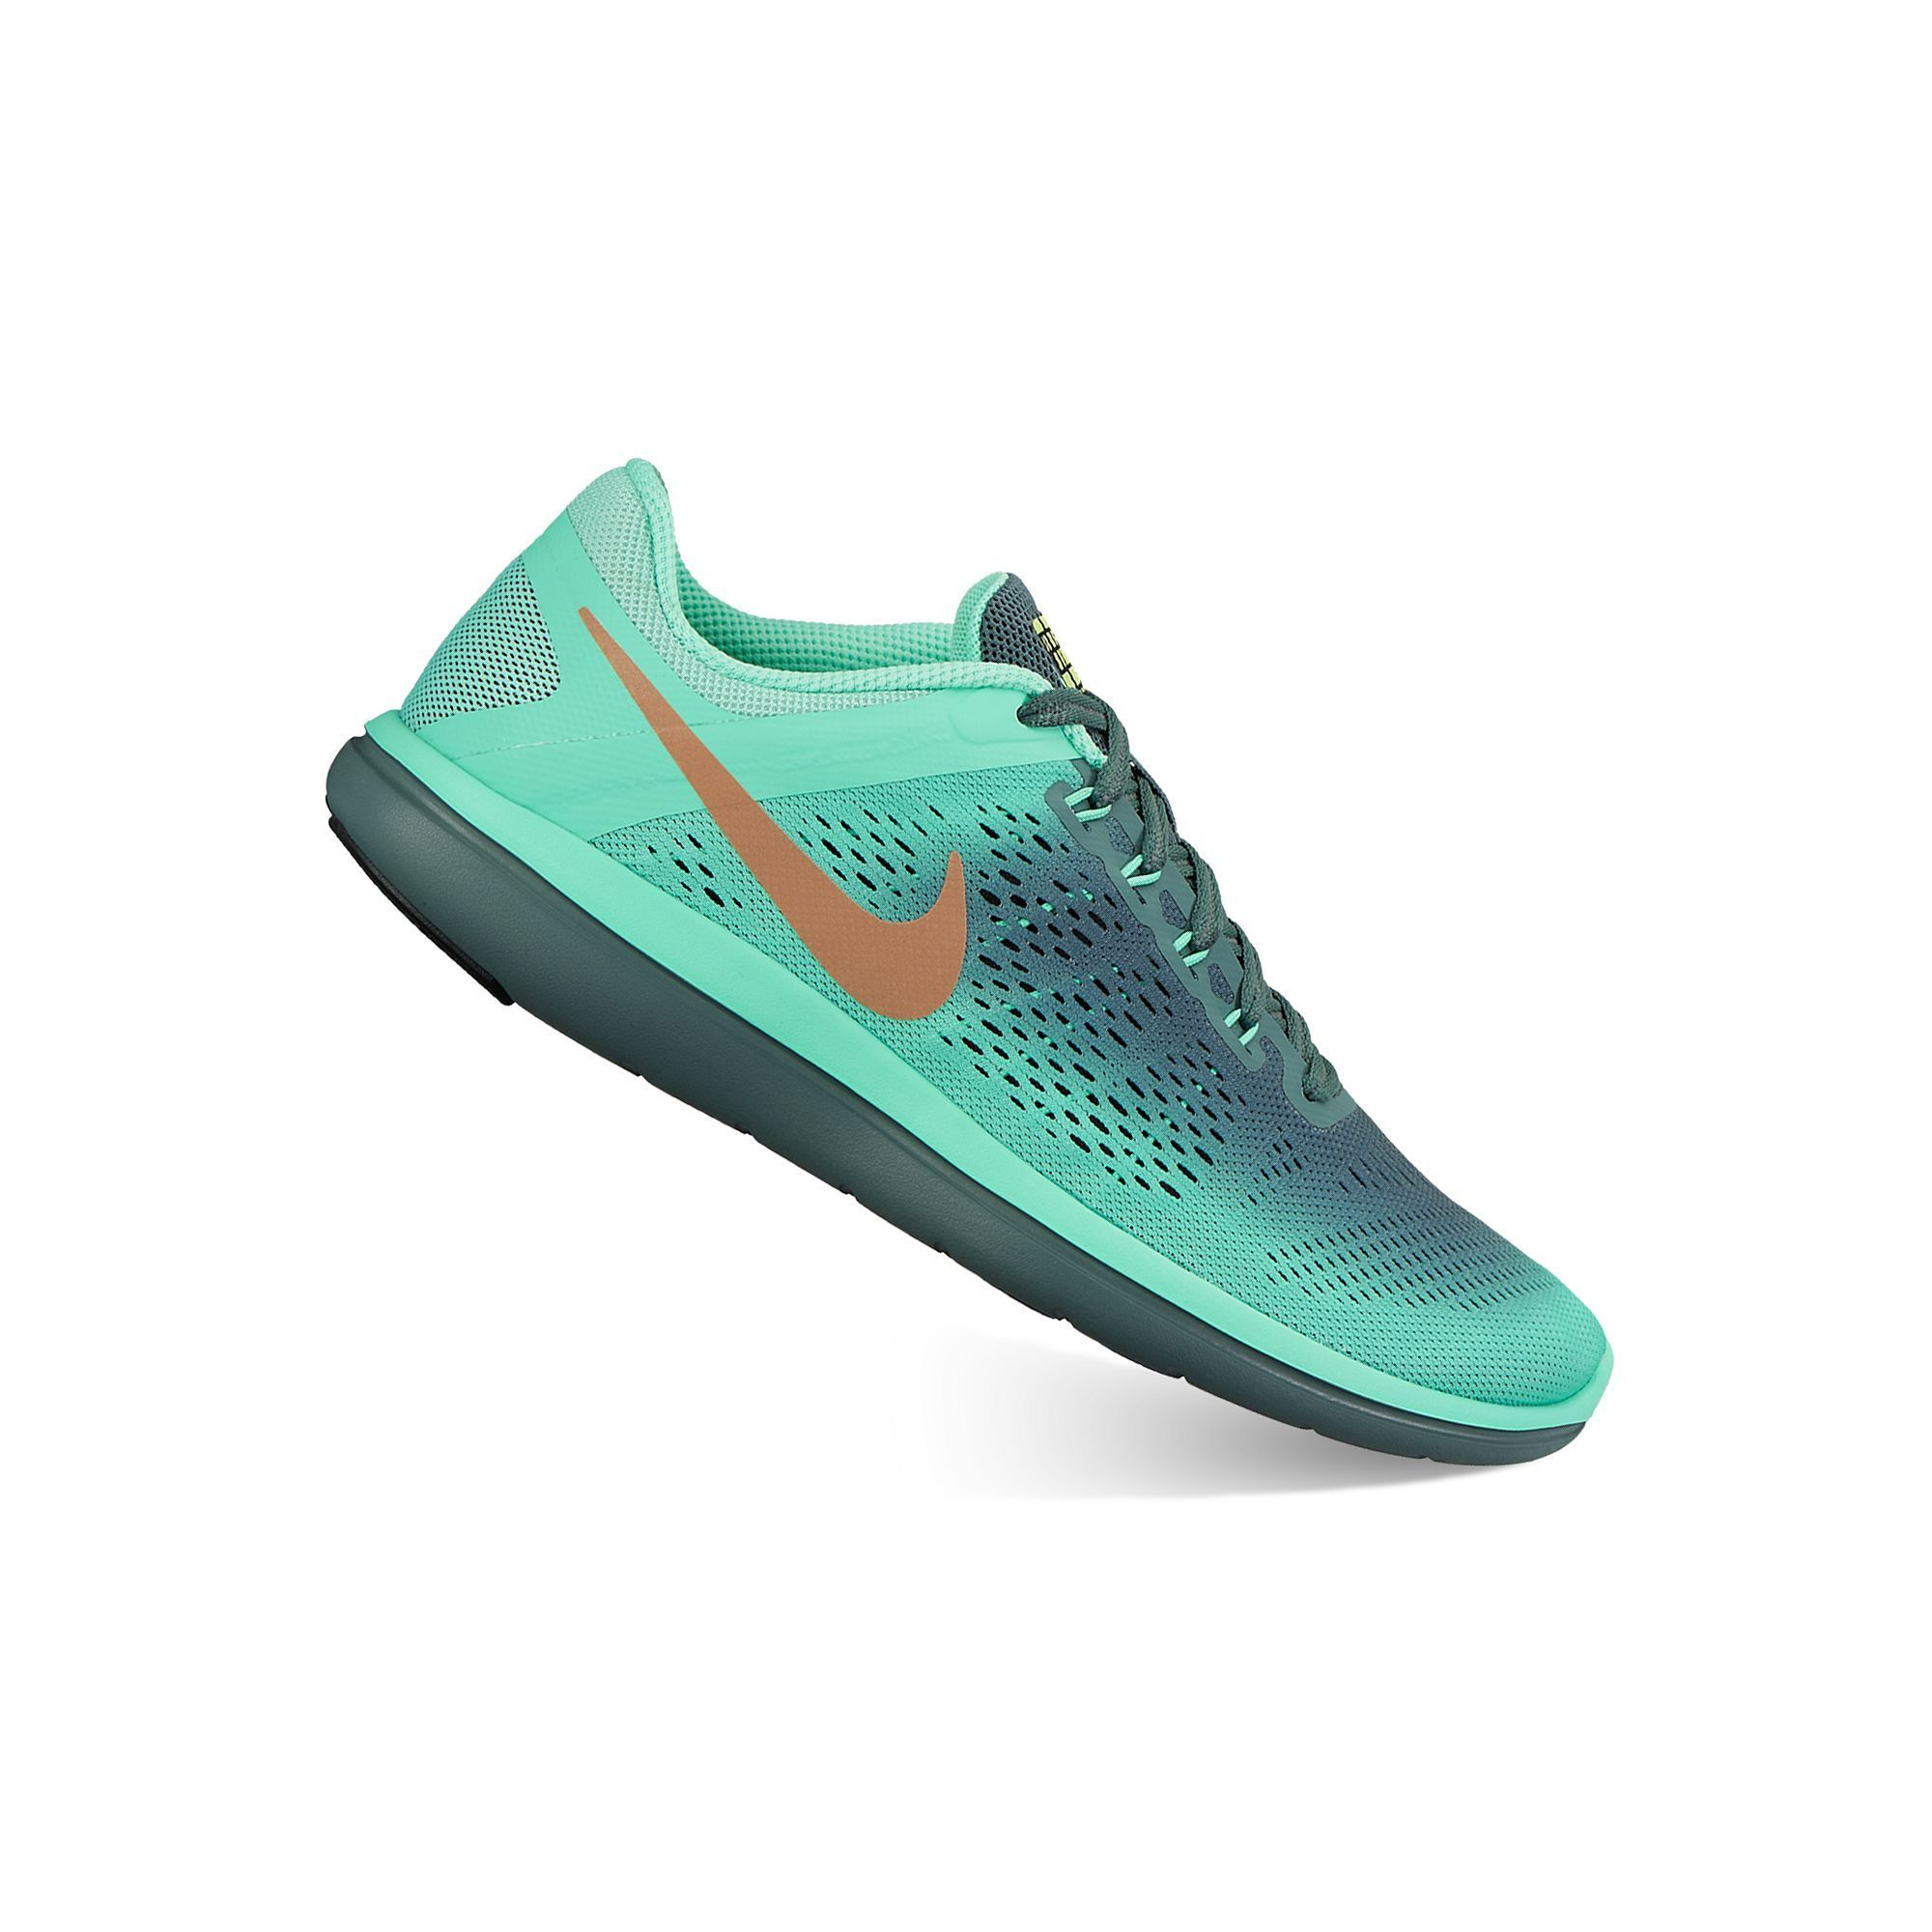 Evento capa Conceder  Nike Flex 2016 Run Shield Womens Water-Resistant Running Shoes, Size: 5,  Green | Nike flex 2016 run, Nike flex, Running shoes